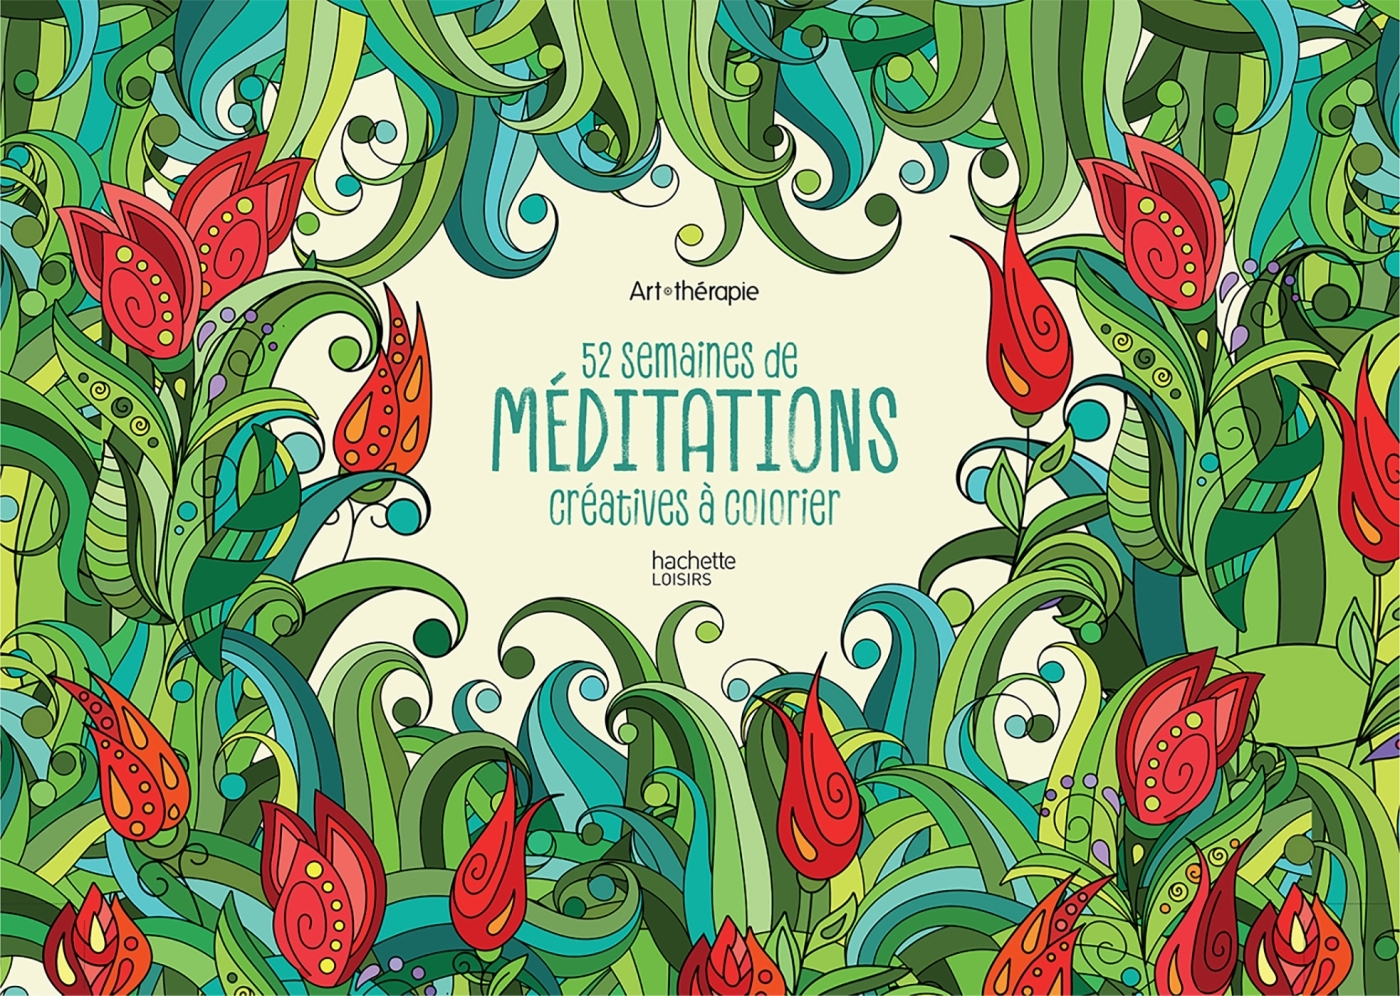 52 SEMAINES DE MEDITATIONS CREATIVES A COLORIER - EPHEMERIDE ART-THERAPIE